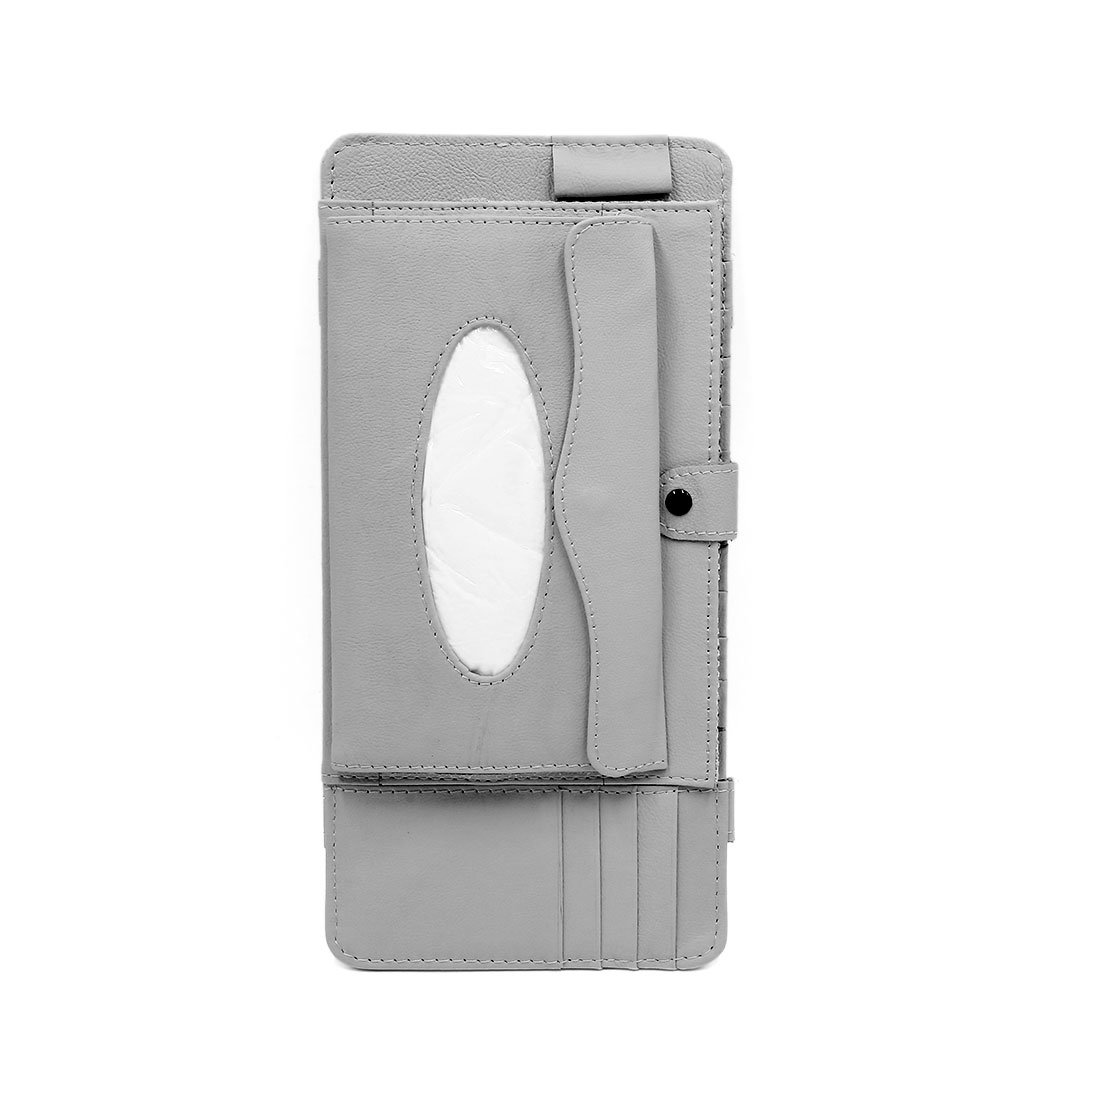 uxcell Gray Faux Leather Multifunctional Vehicle Car Sun Visor CD Holder Napkin Pouch